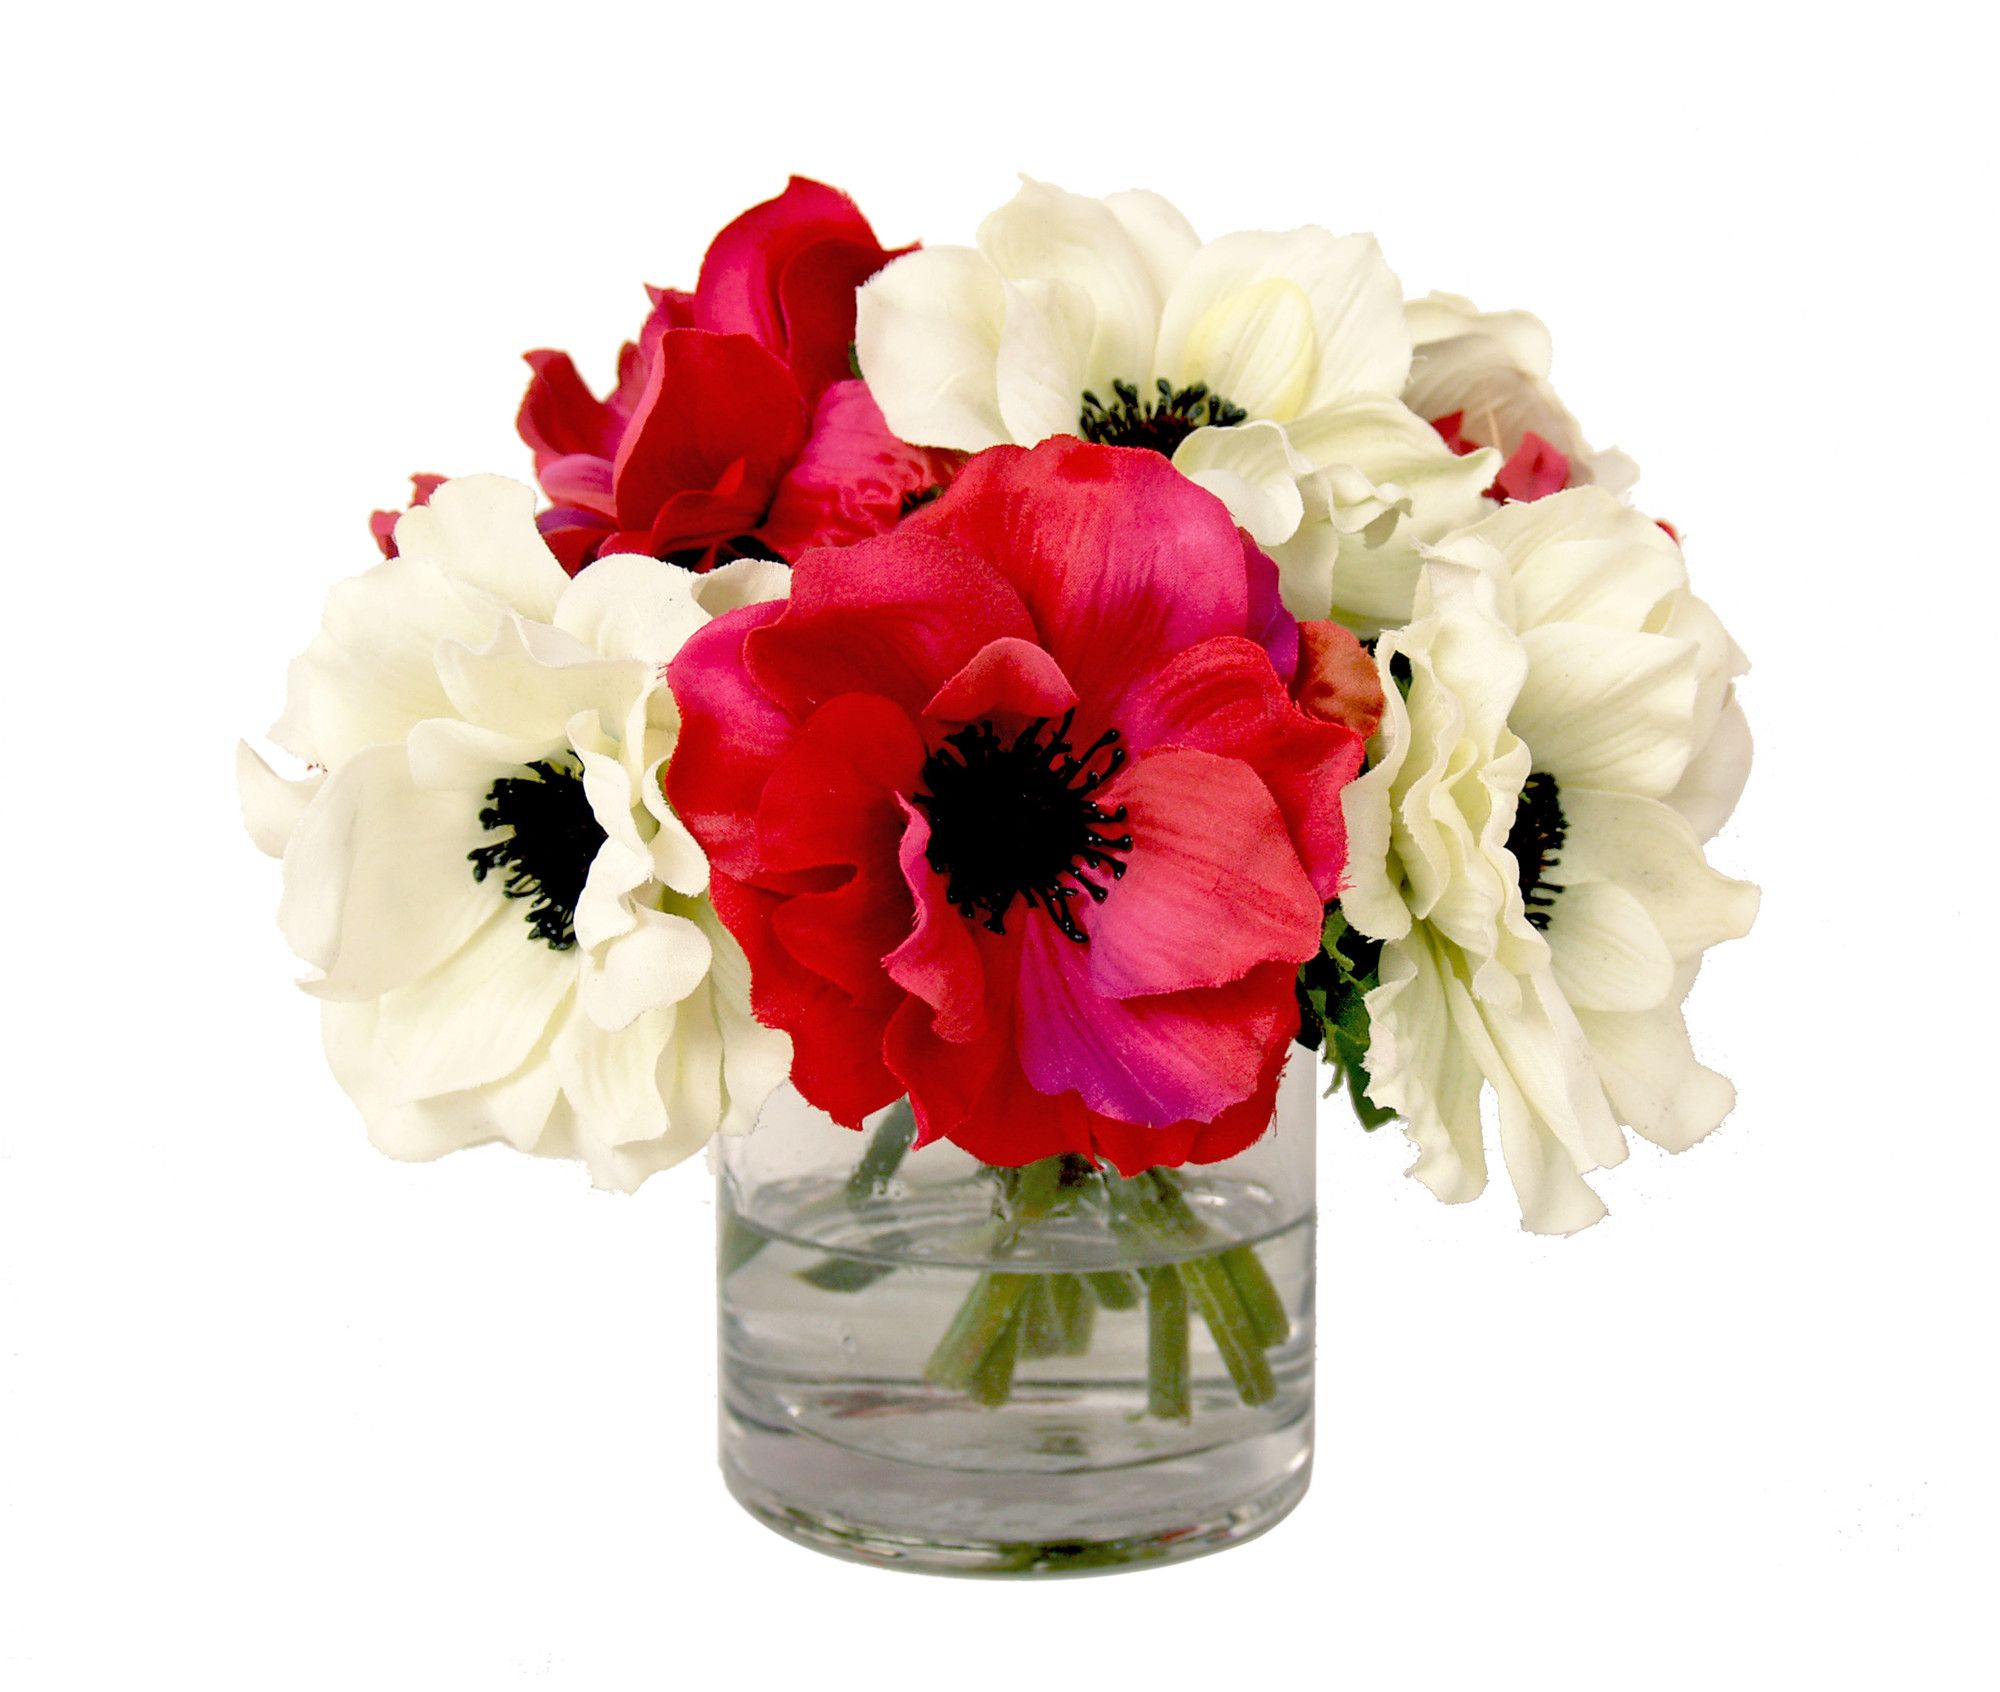 Anemone Floral Water Vassel Water And Products